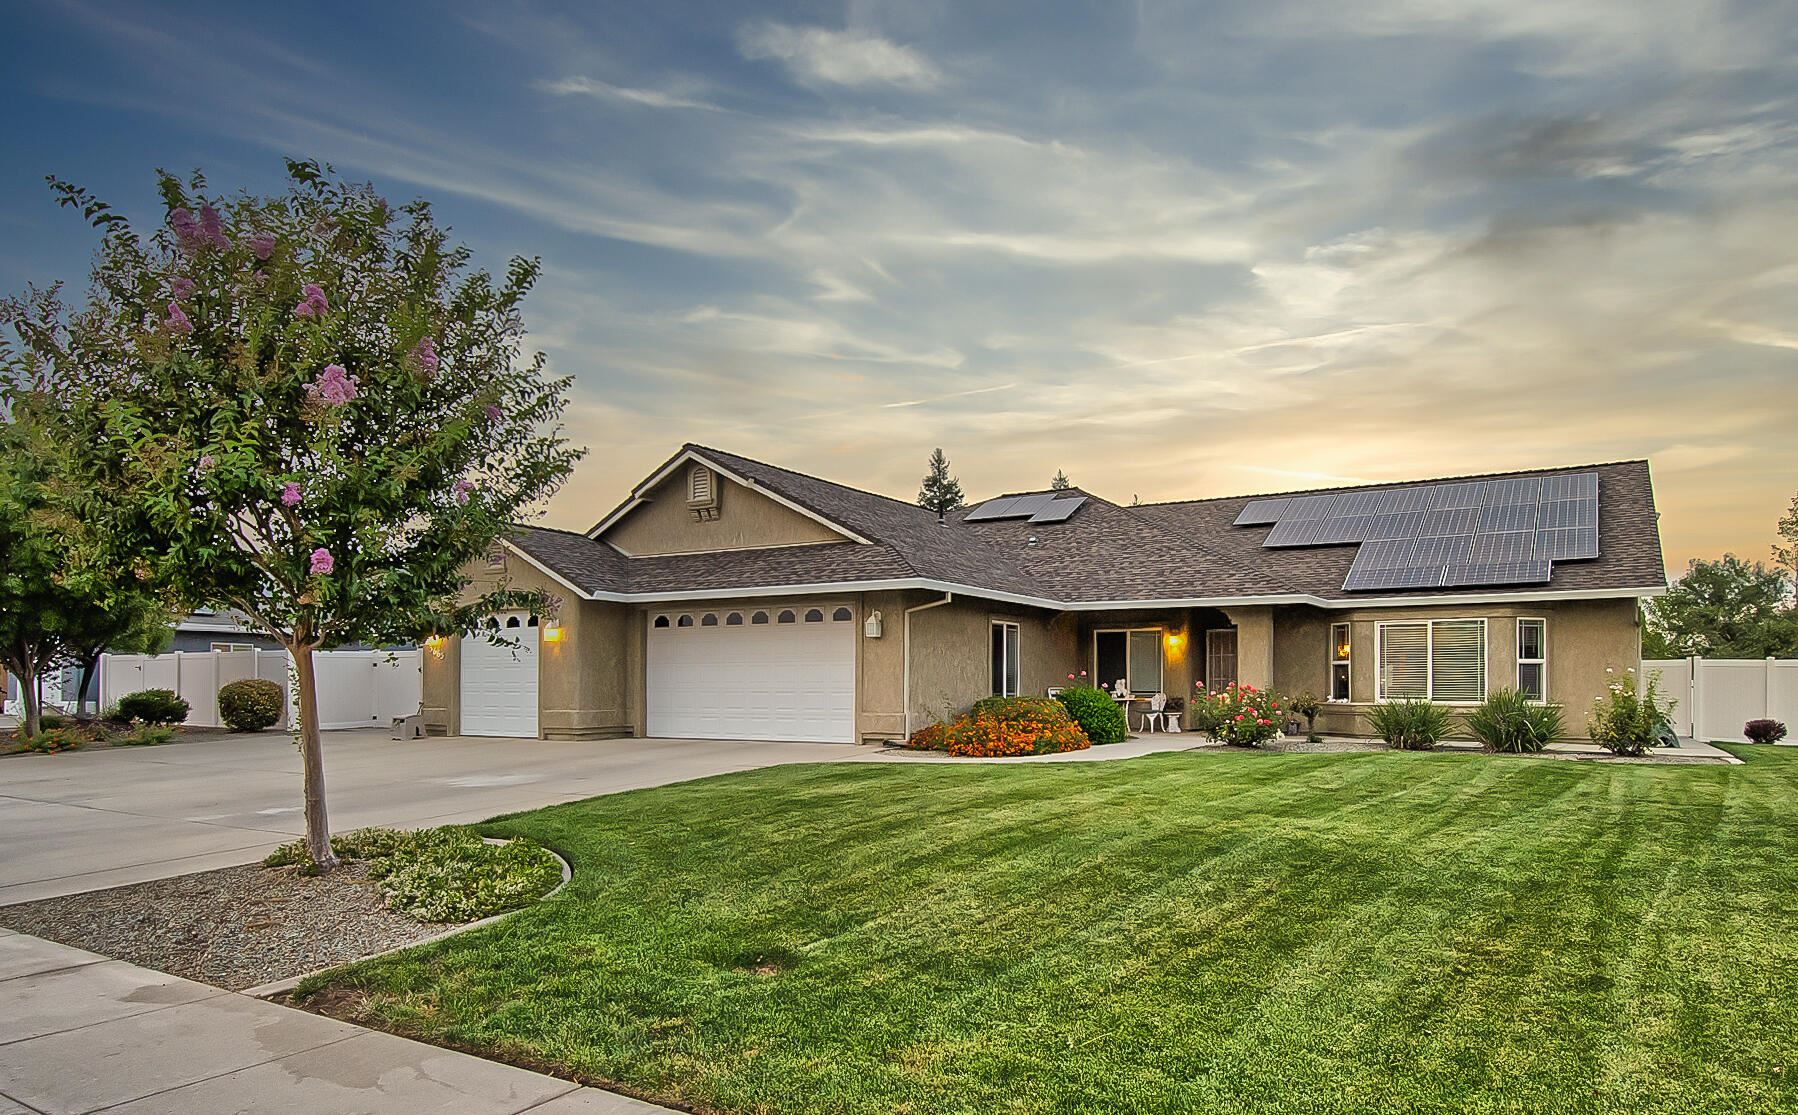 Photo of 3665 Westhaven Dr, Cottonwood, CA 96022 (MLS # 21-4835)